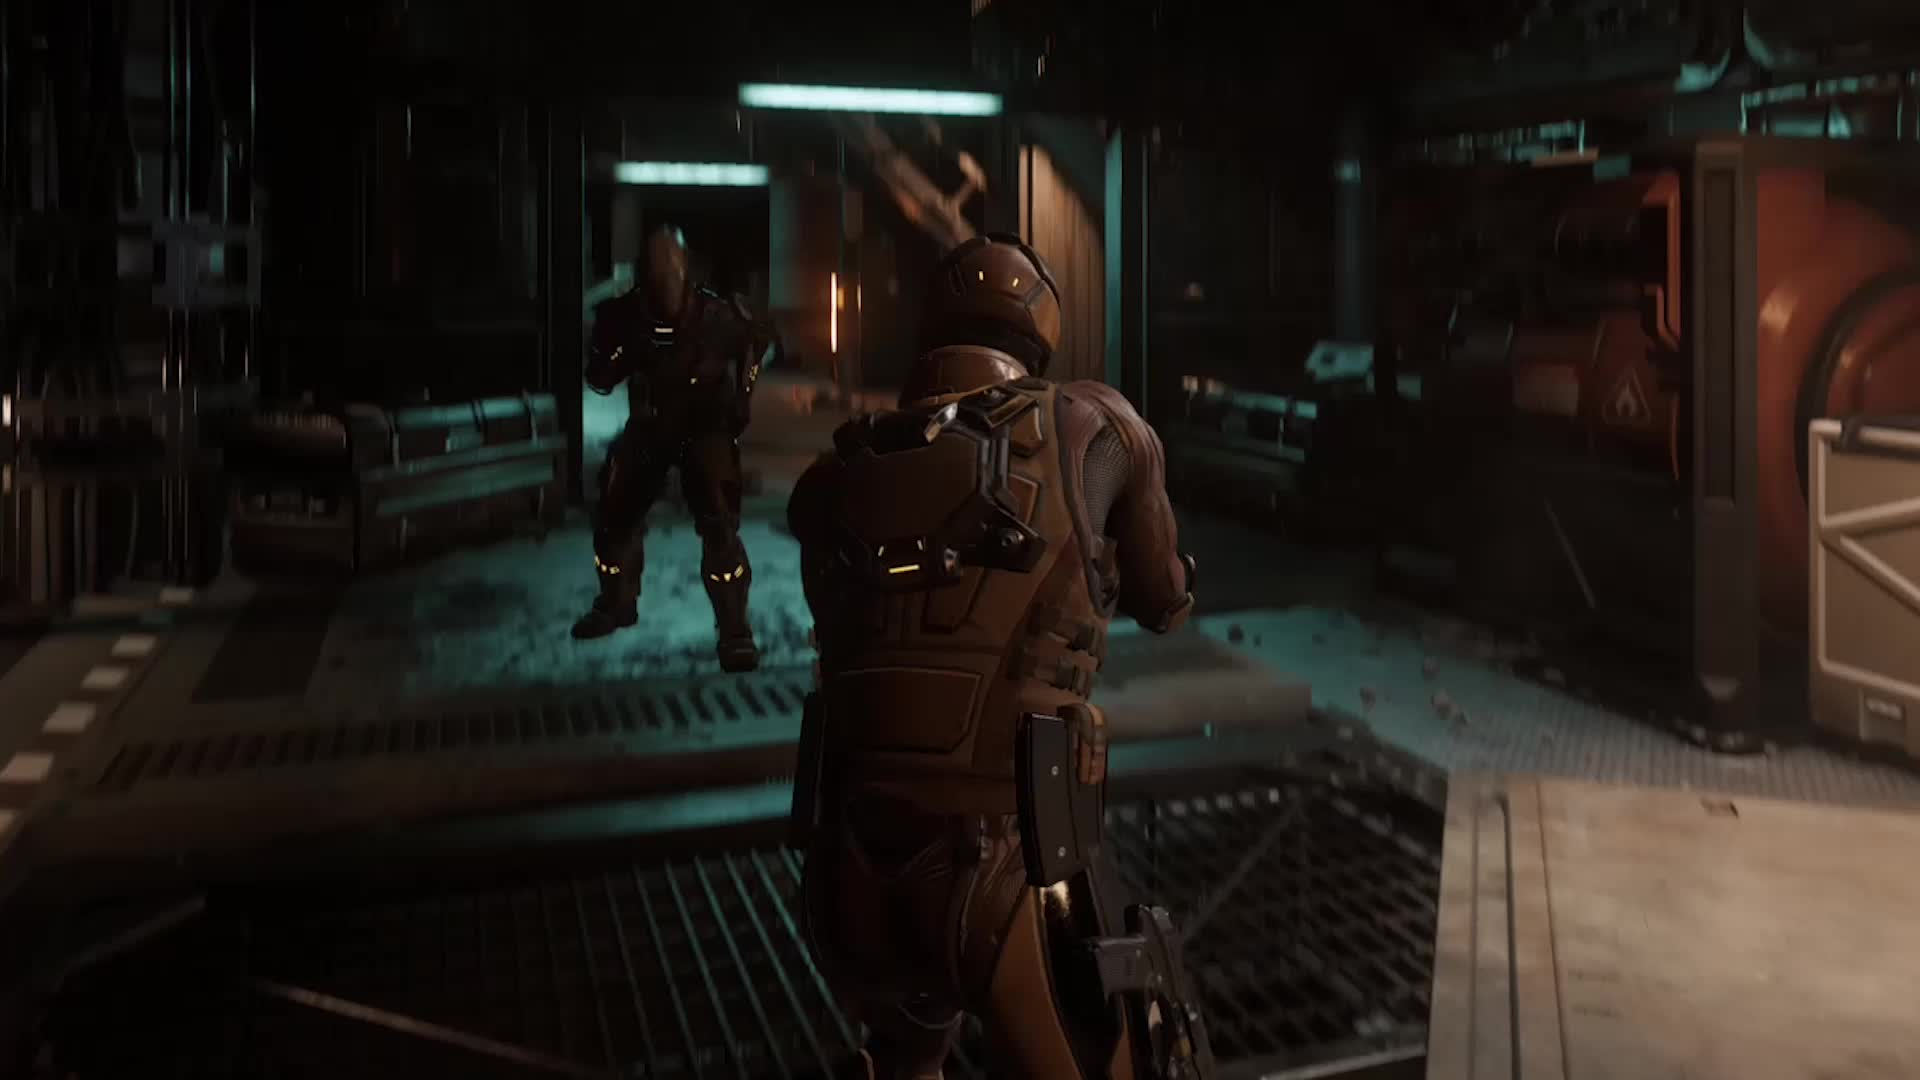 gaming_gifs, gamingpc, starcitizen, Ouch ouch ouch ouch... I'm OK! GIFs